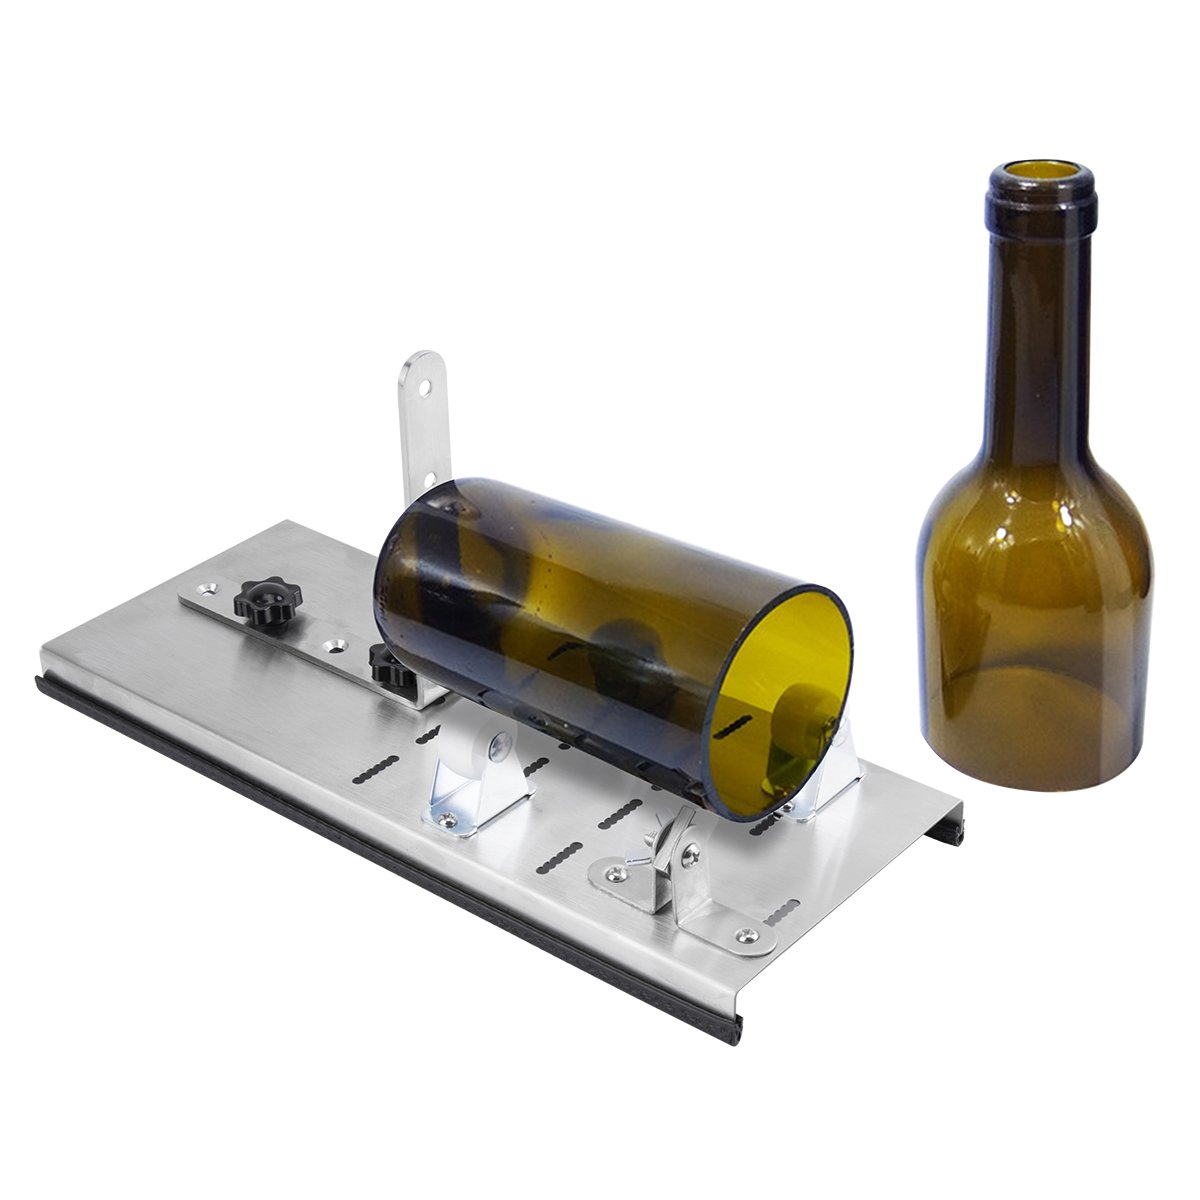 Glass Bottle Cutter,Adjust full sized Bottle Cutter DIY Cutting Machine Wine Bottles and Beer Bottles Cutting Tool (Advanced) DARPIL 4336850016